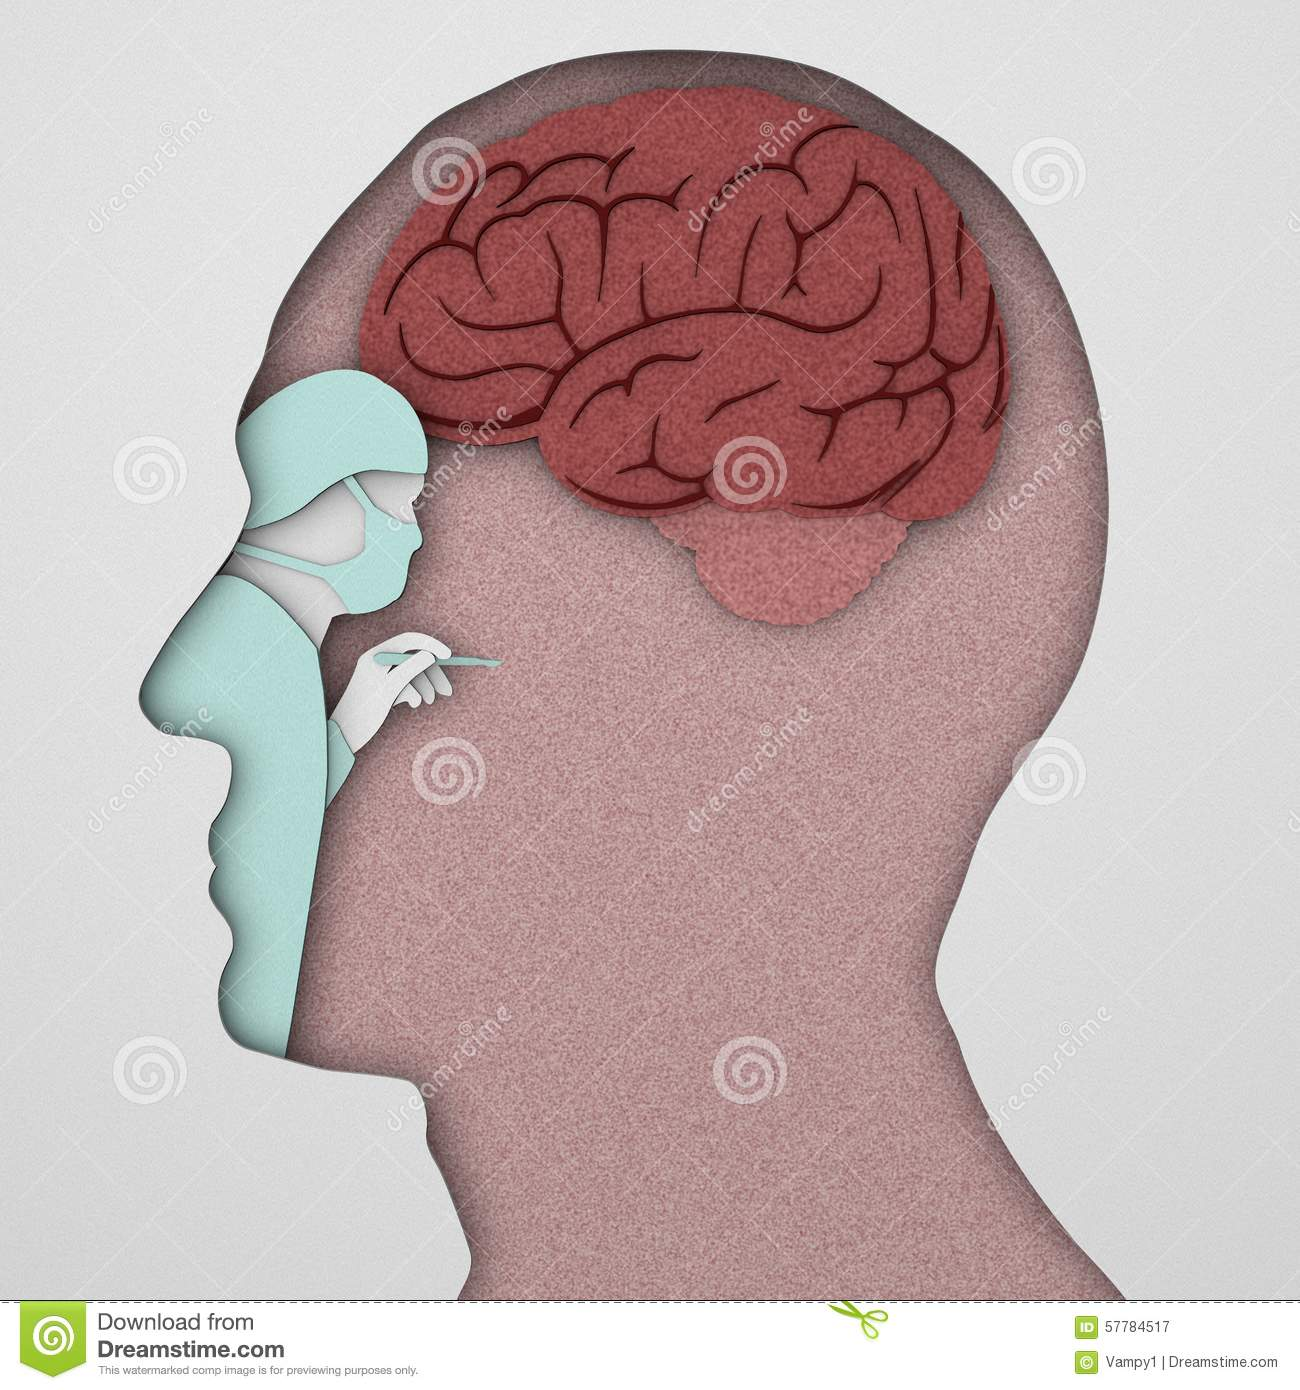 Brain Neurons Synapse, Anatomy, Head Profile, Stock Illustration ...